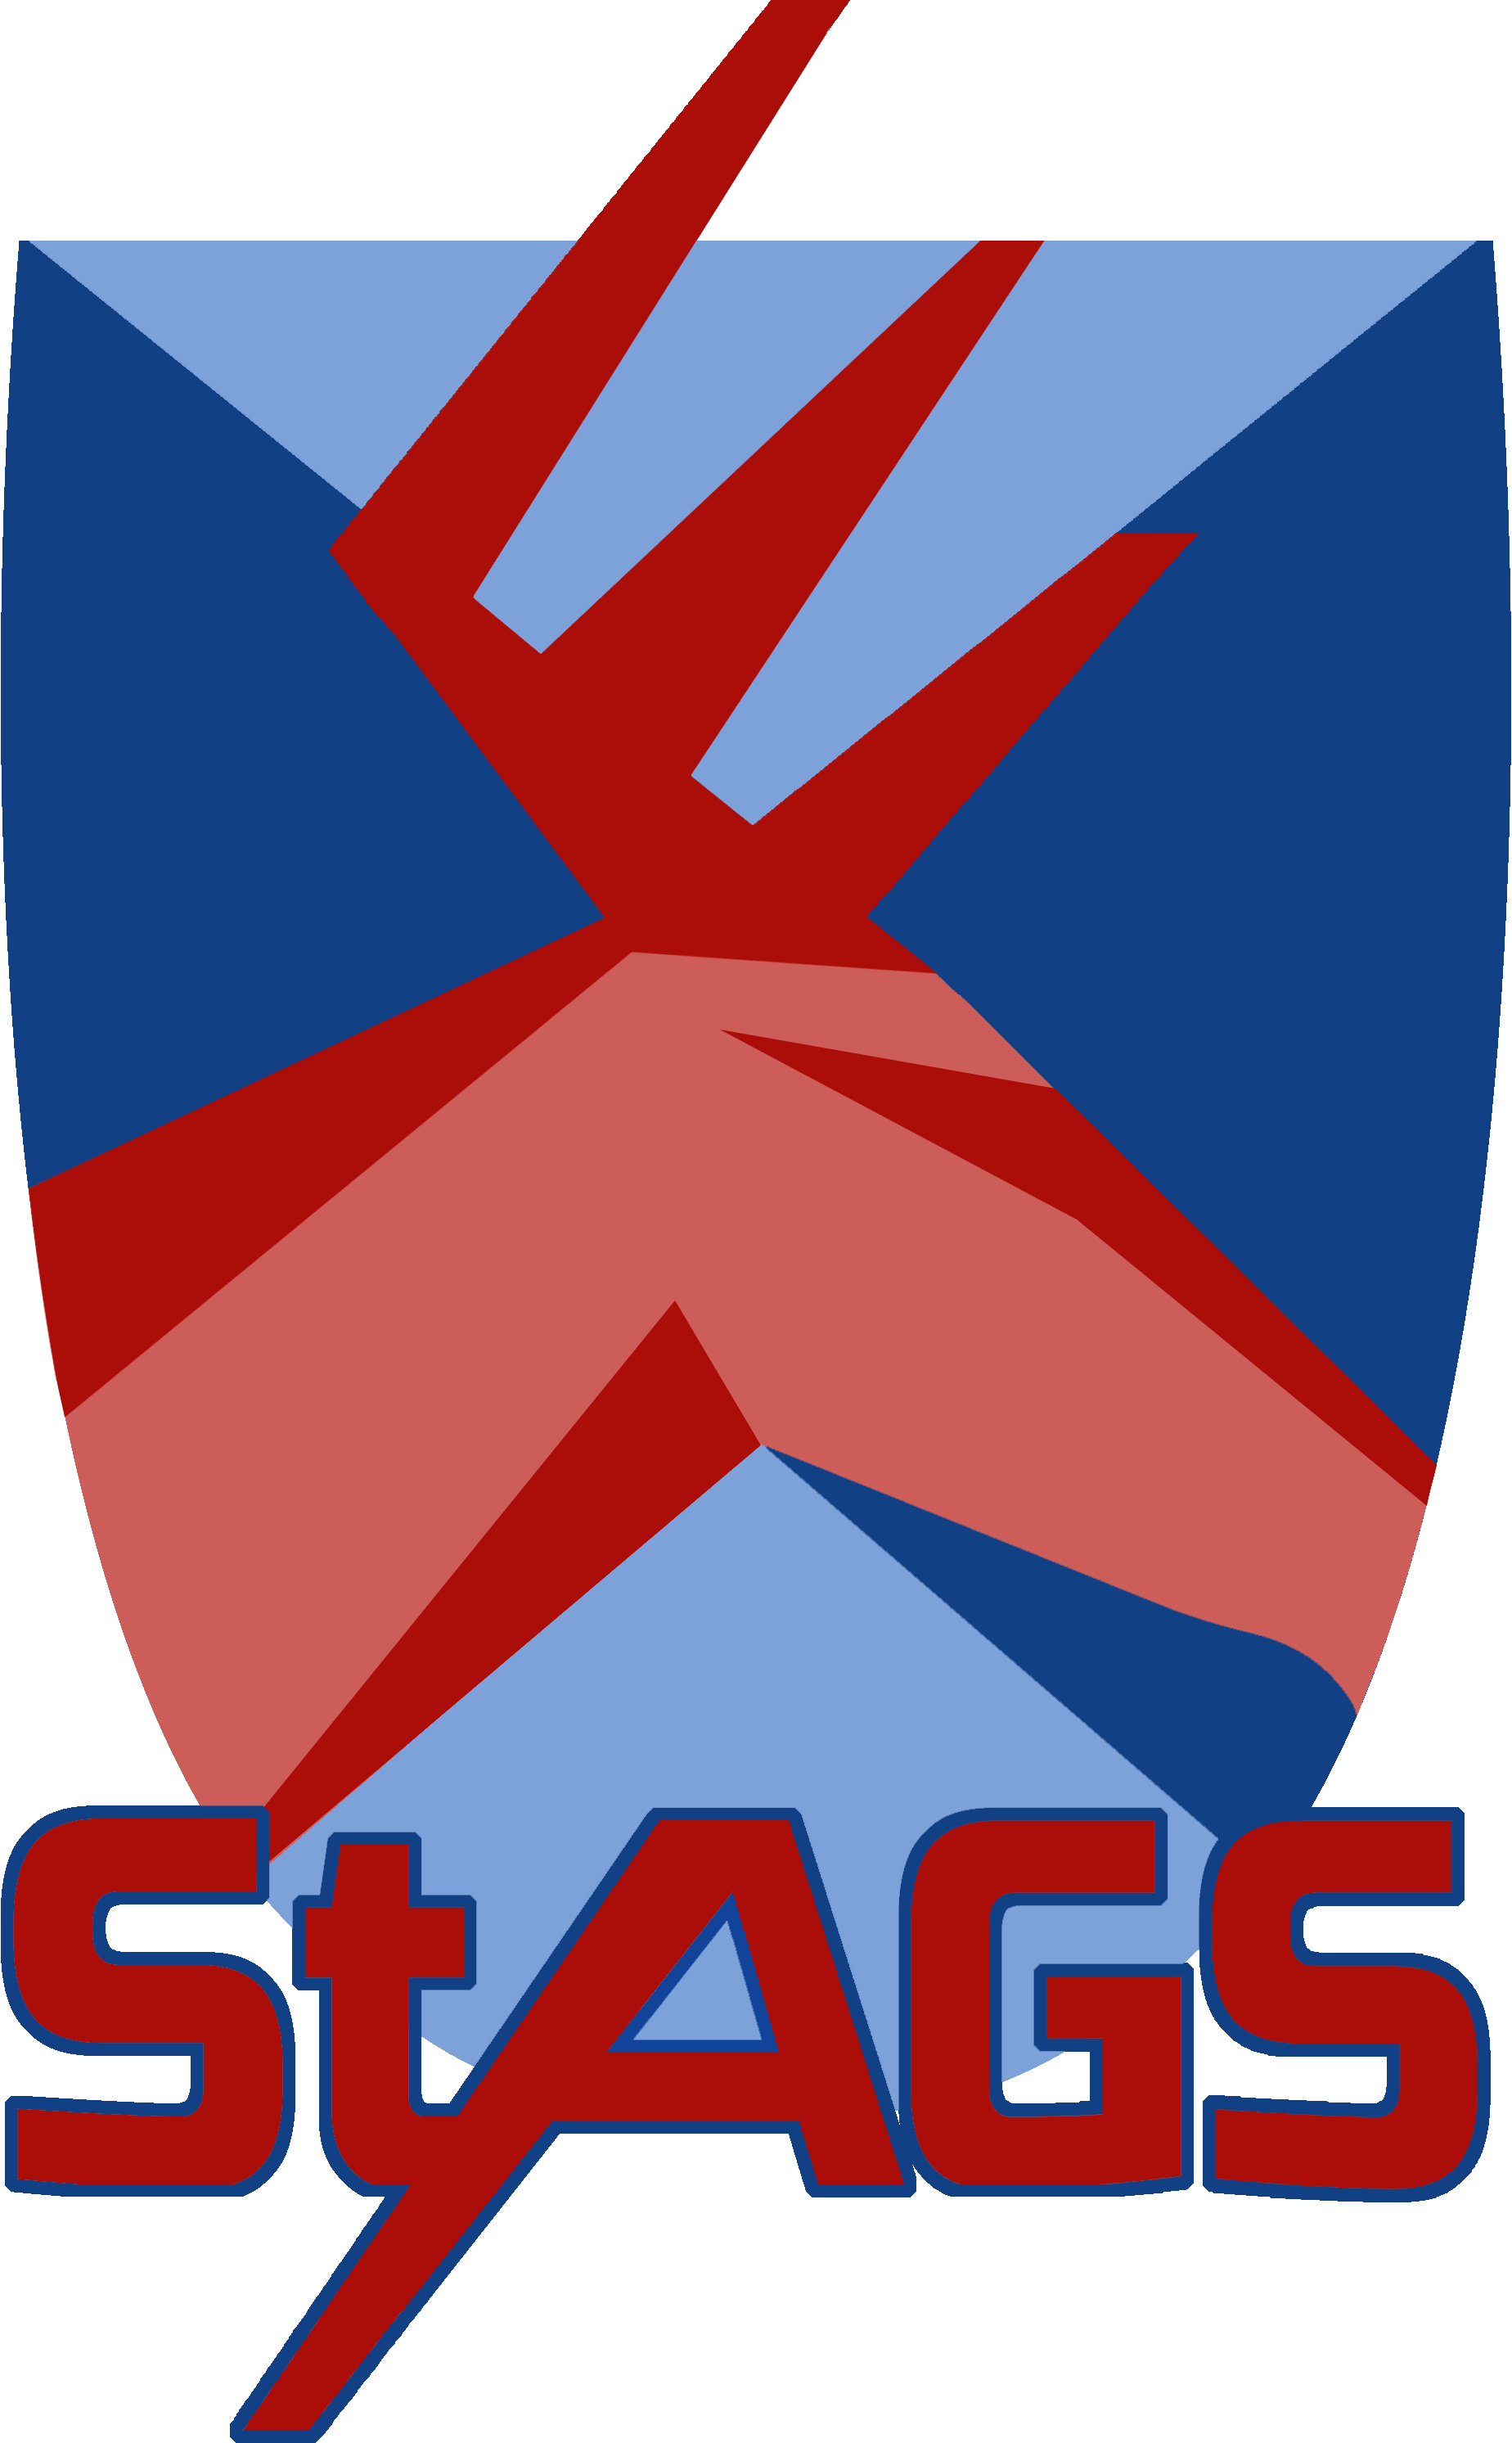 StAGS Esports logo done by Elspeth Rider of the Design Team.